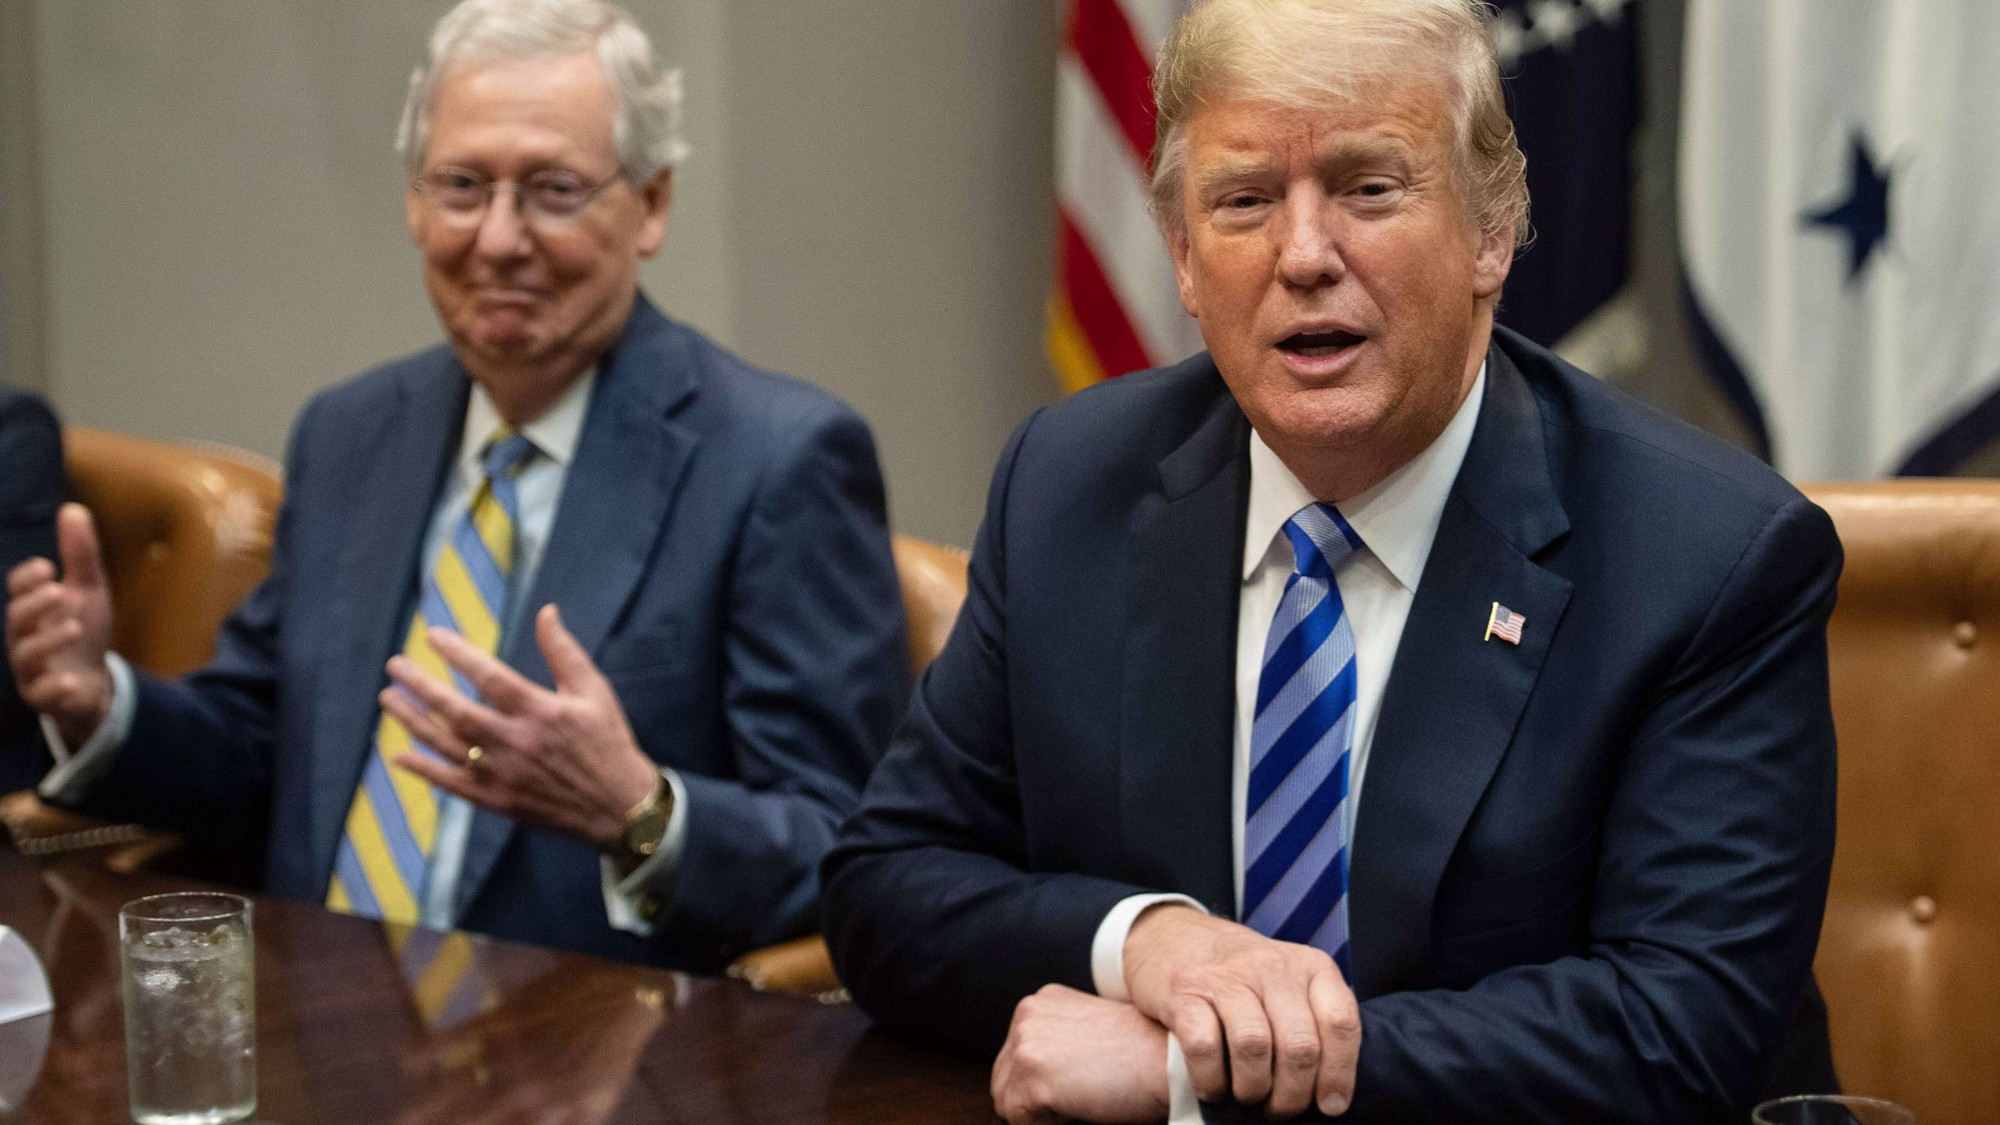 """McConnell says """"he'd 'absolutely' support Trump if he's the 2024 GOP presidential nominee."""" Source: https://ktla.com/news/politics/mcconnell-says-he-would-absolutely-support-trump-if-hes-the-2024-gop-presidential-nominee/"""